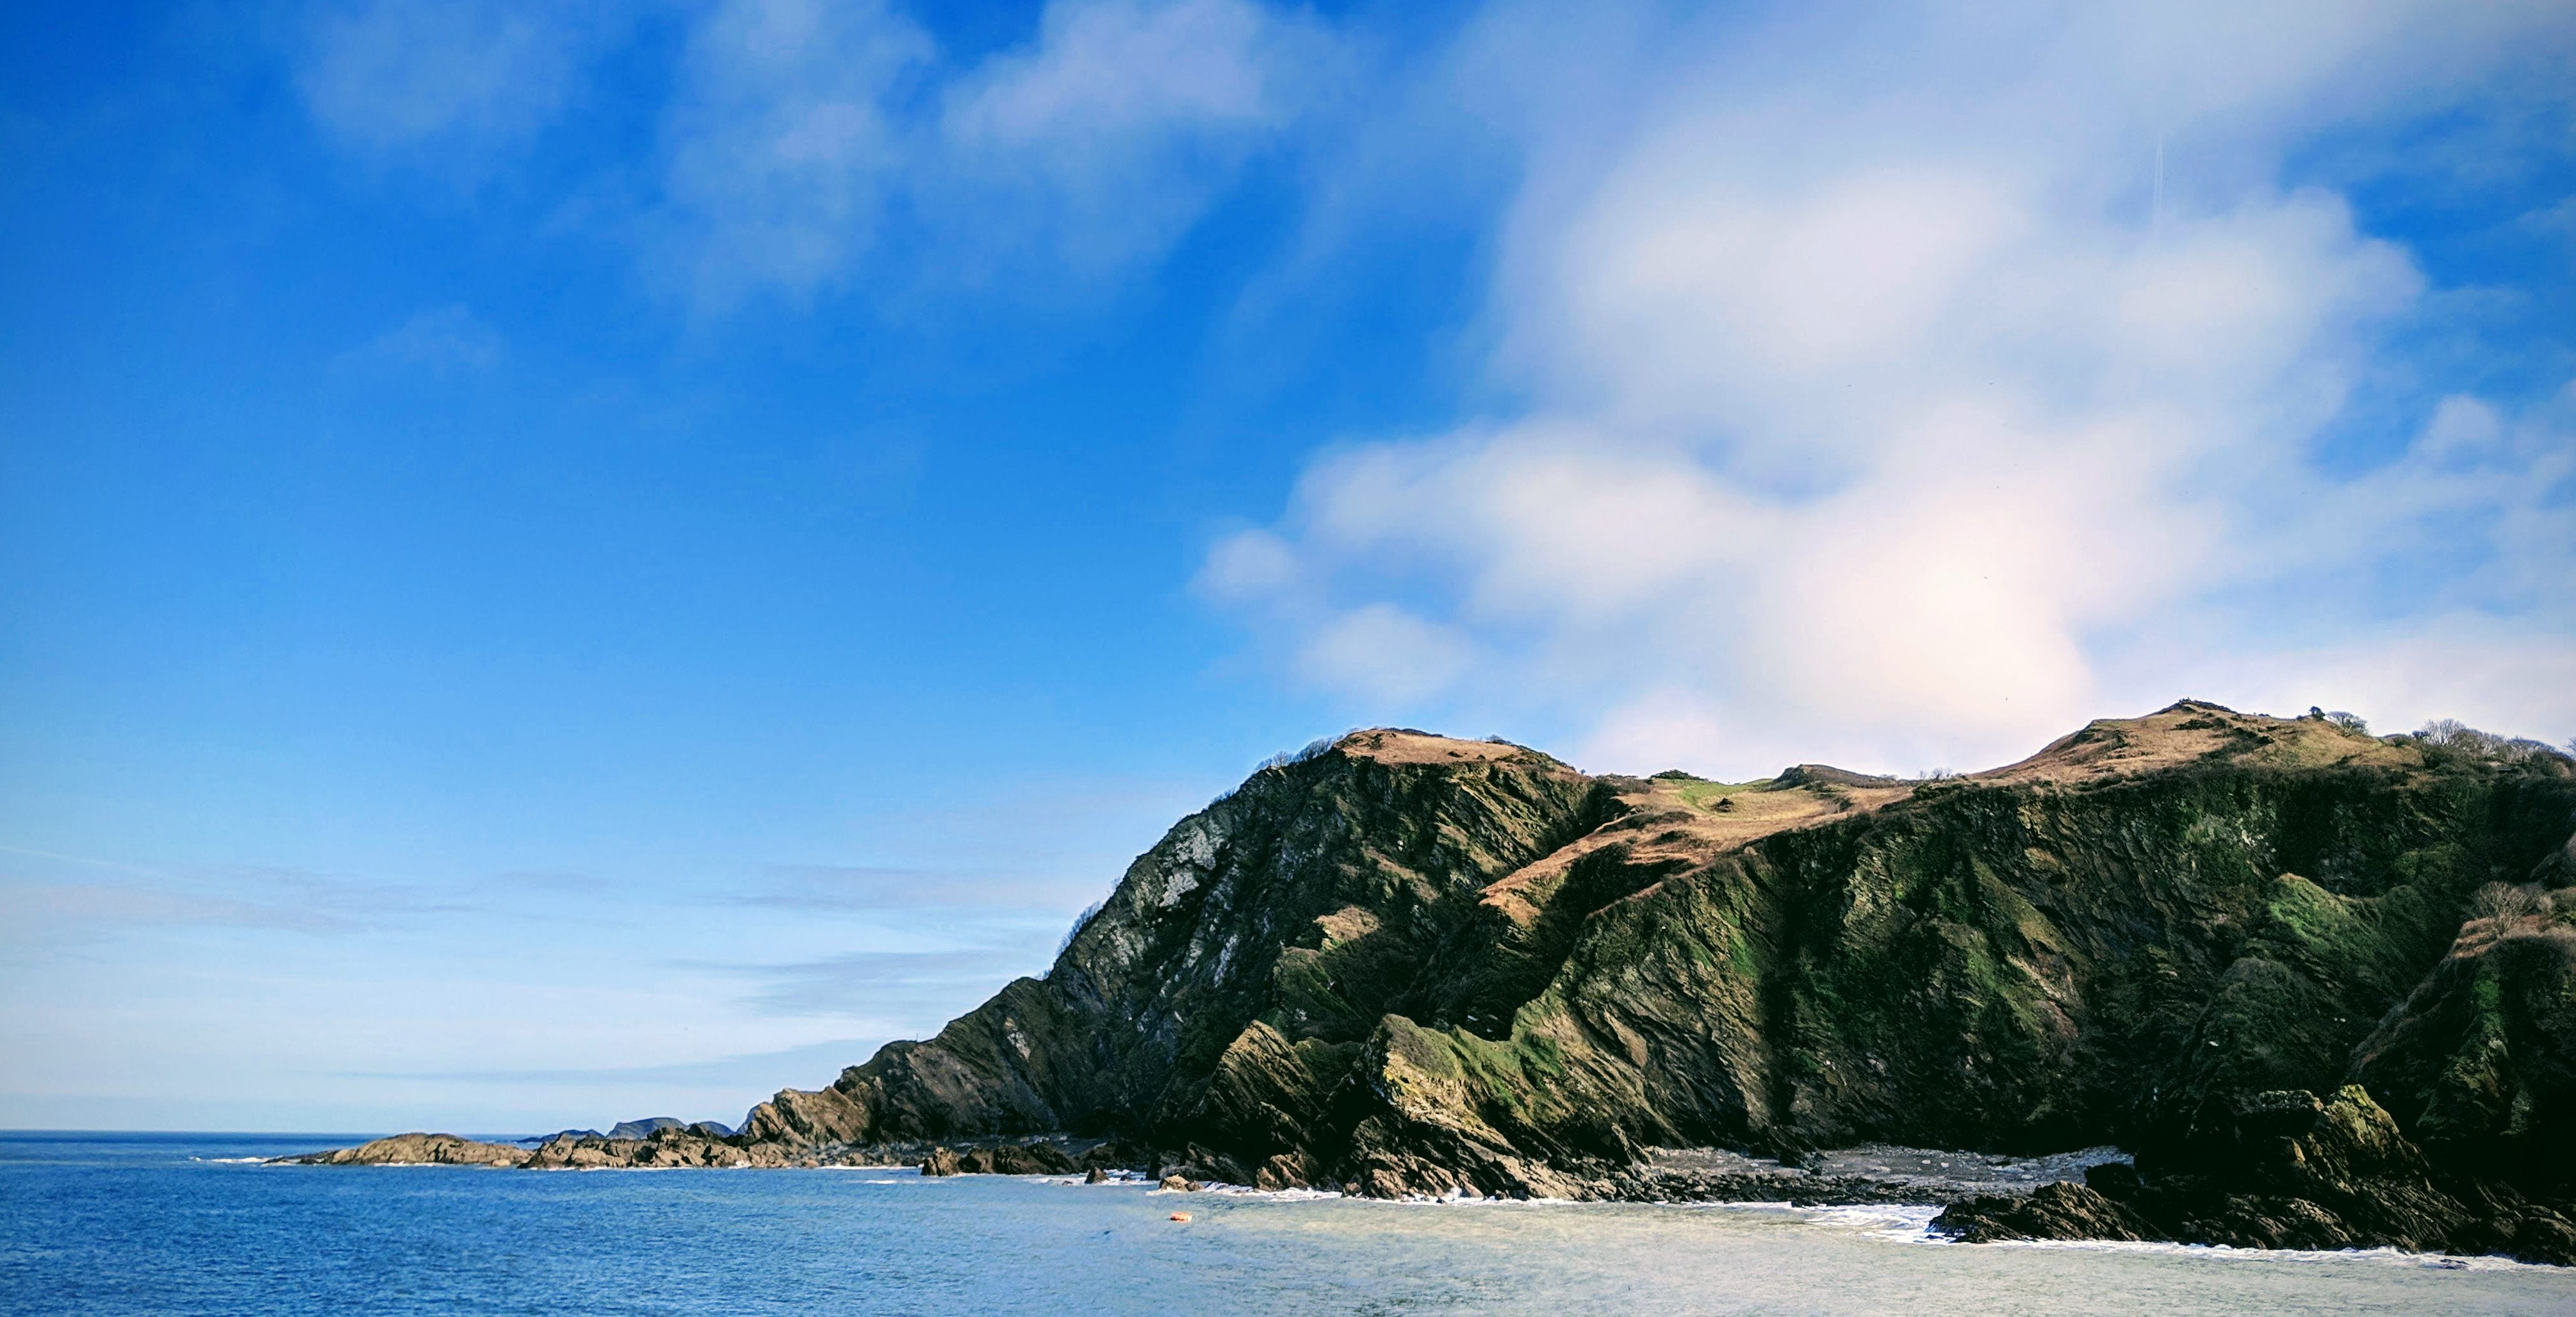 blue sky and sea with hills in background Ilfracombe harbour